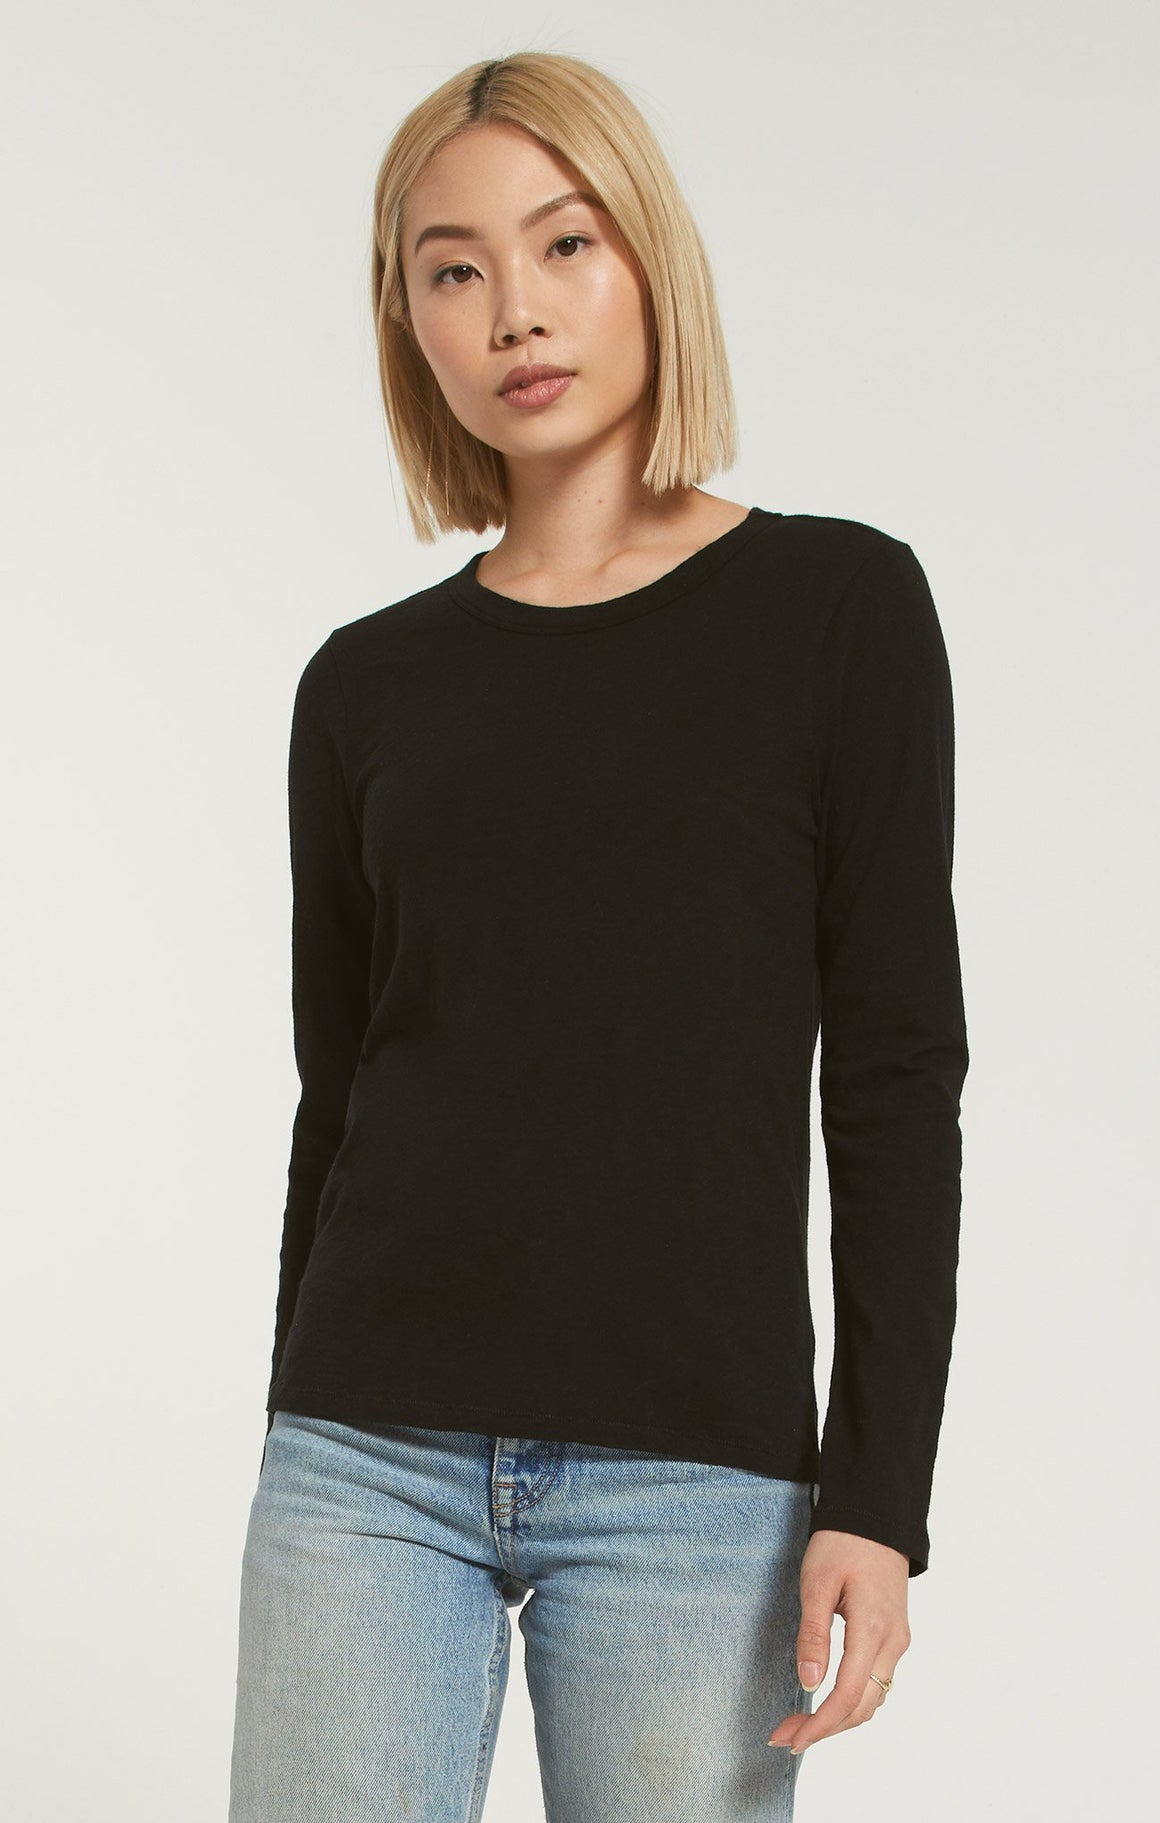 Z Supply Long Sleeve Crew-Neck Cotton Top | Black, White, Taupe